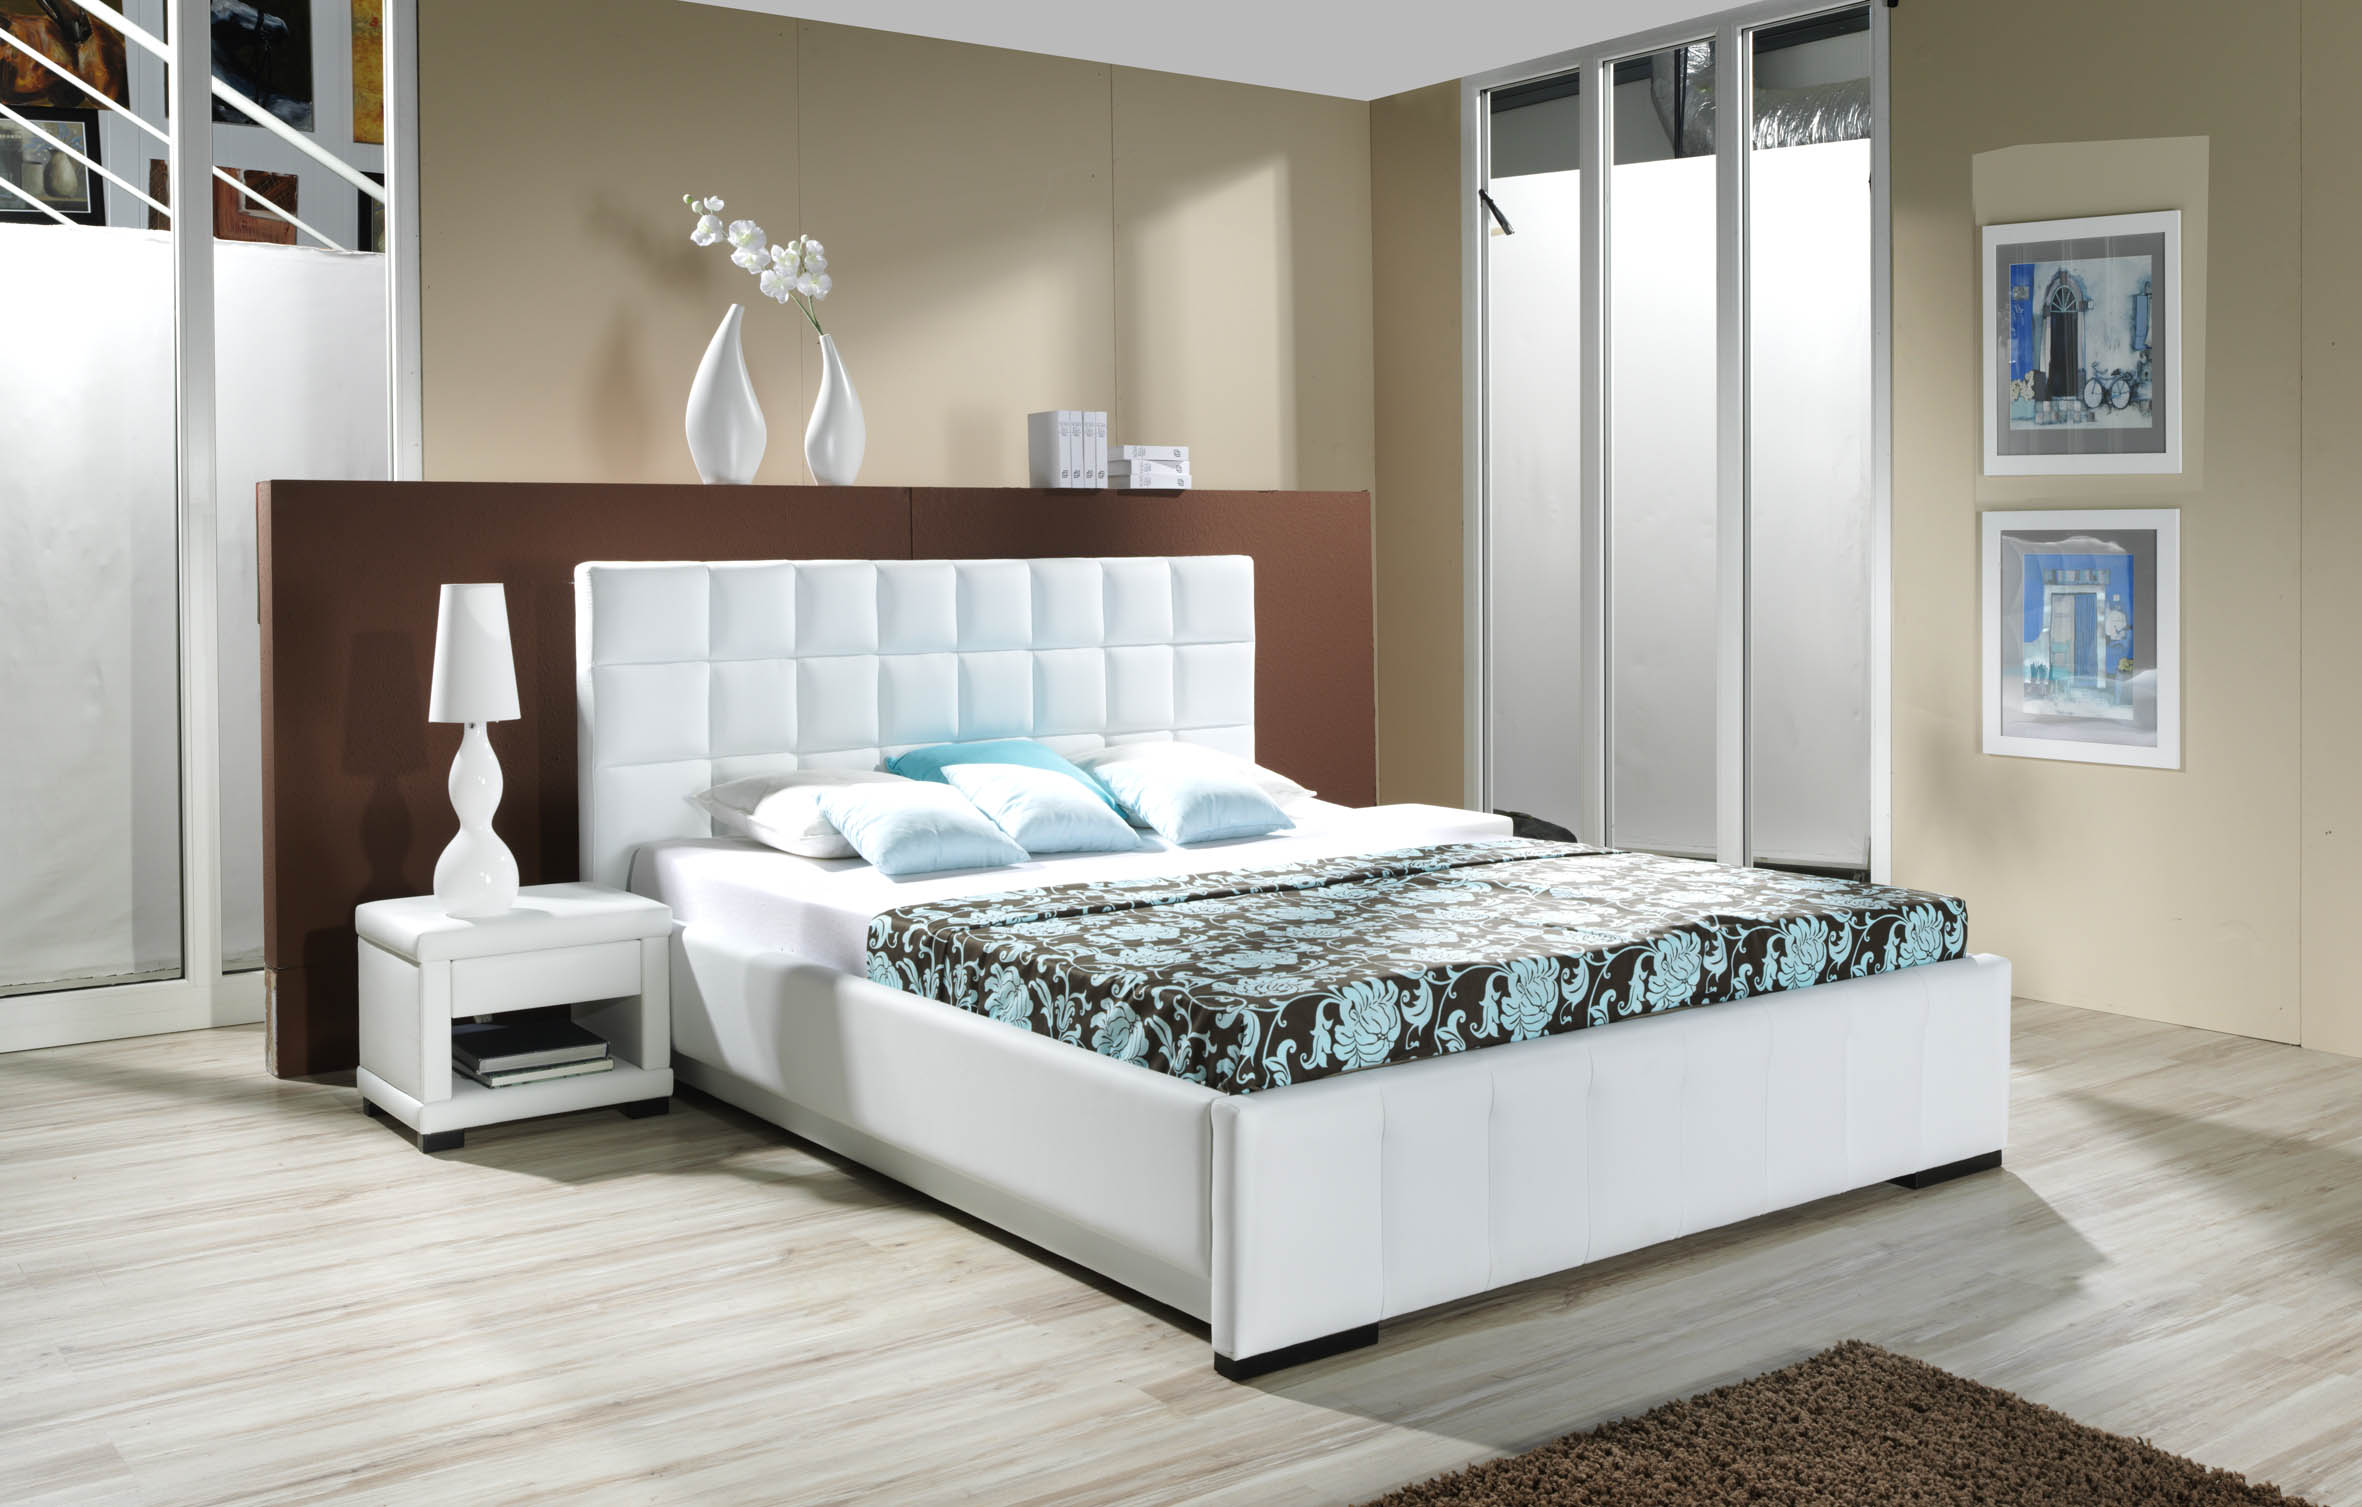 Bedroom Furniture Ideas 15 Top White Bedroom Furniture Might Be Suitable For Your Room